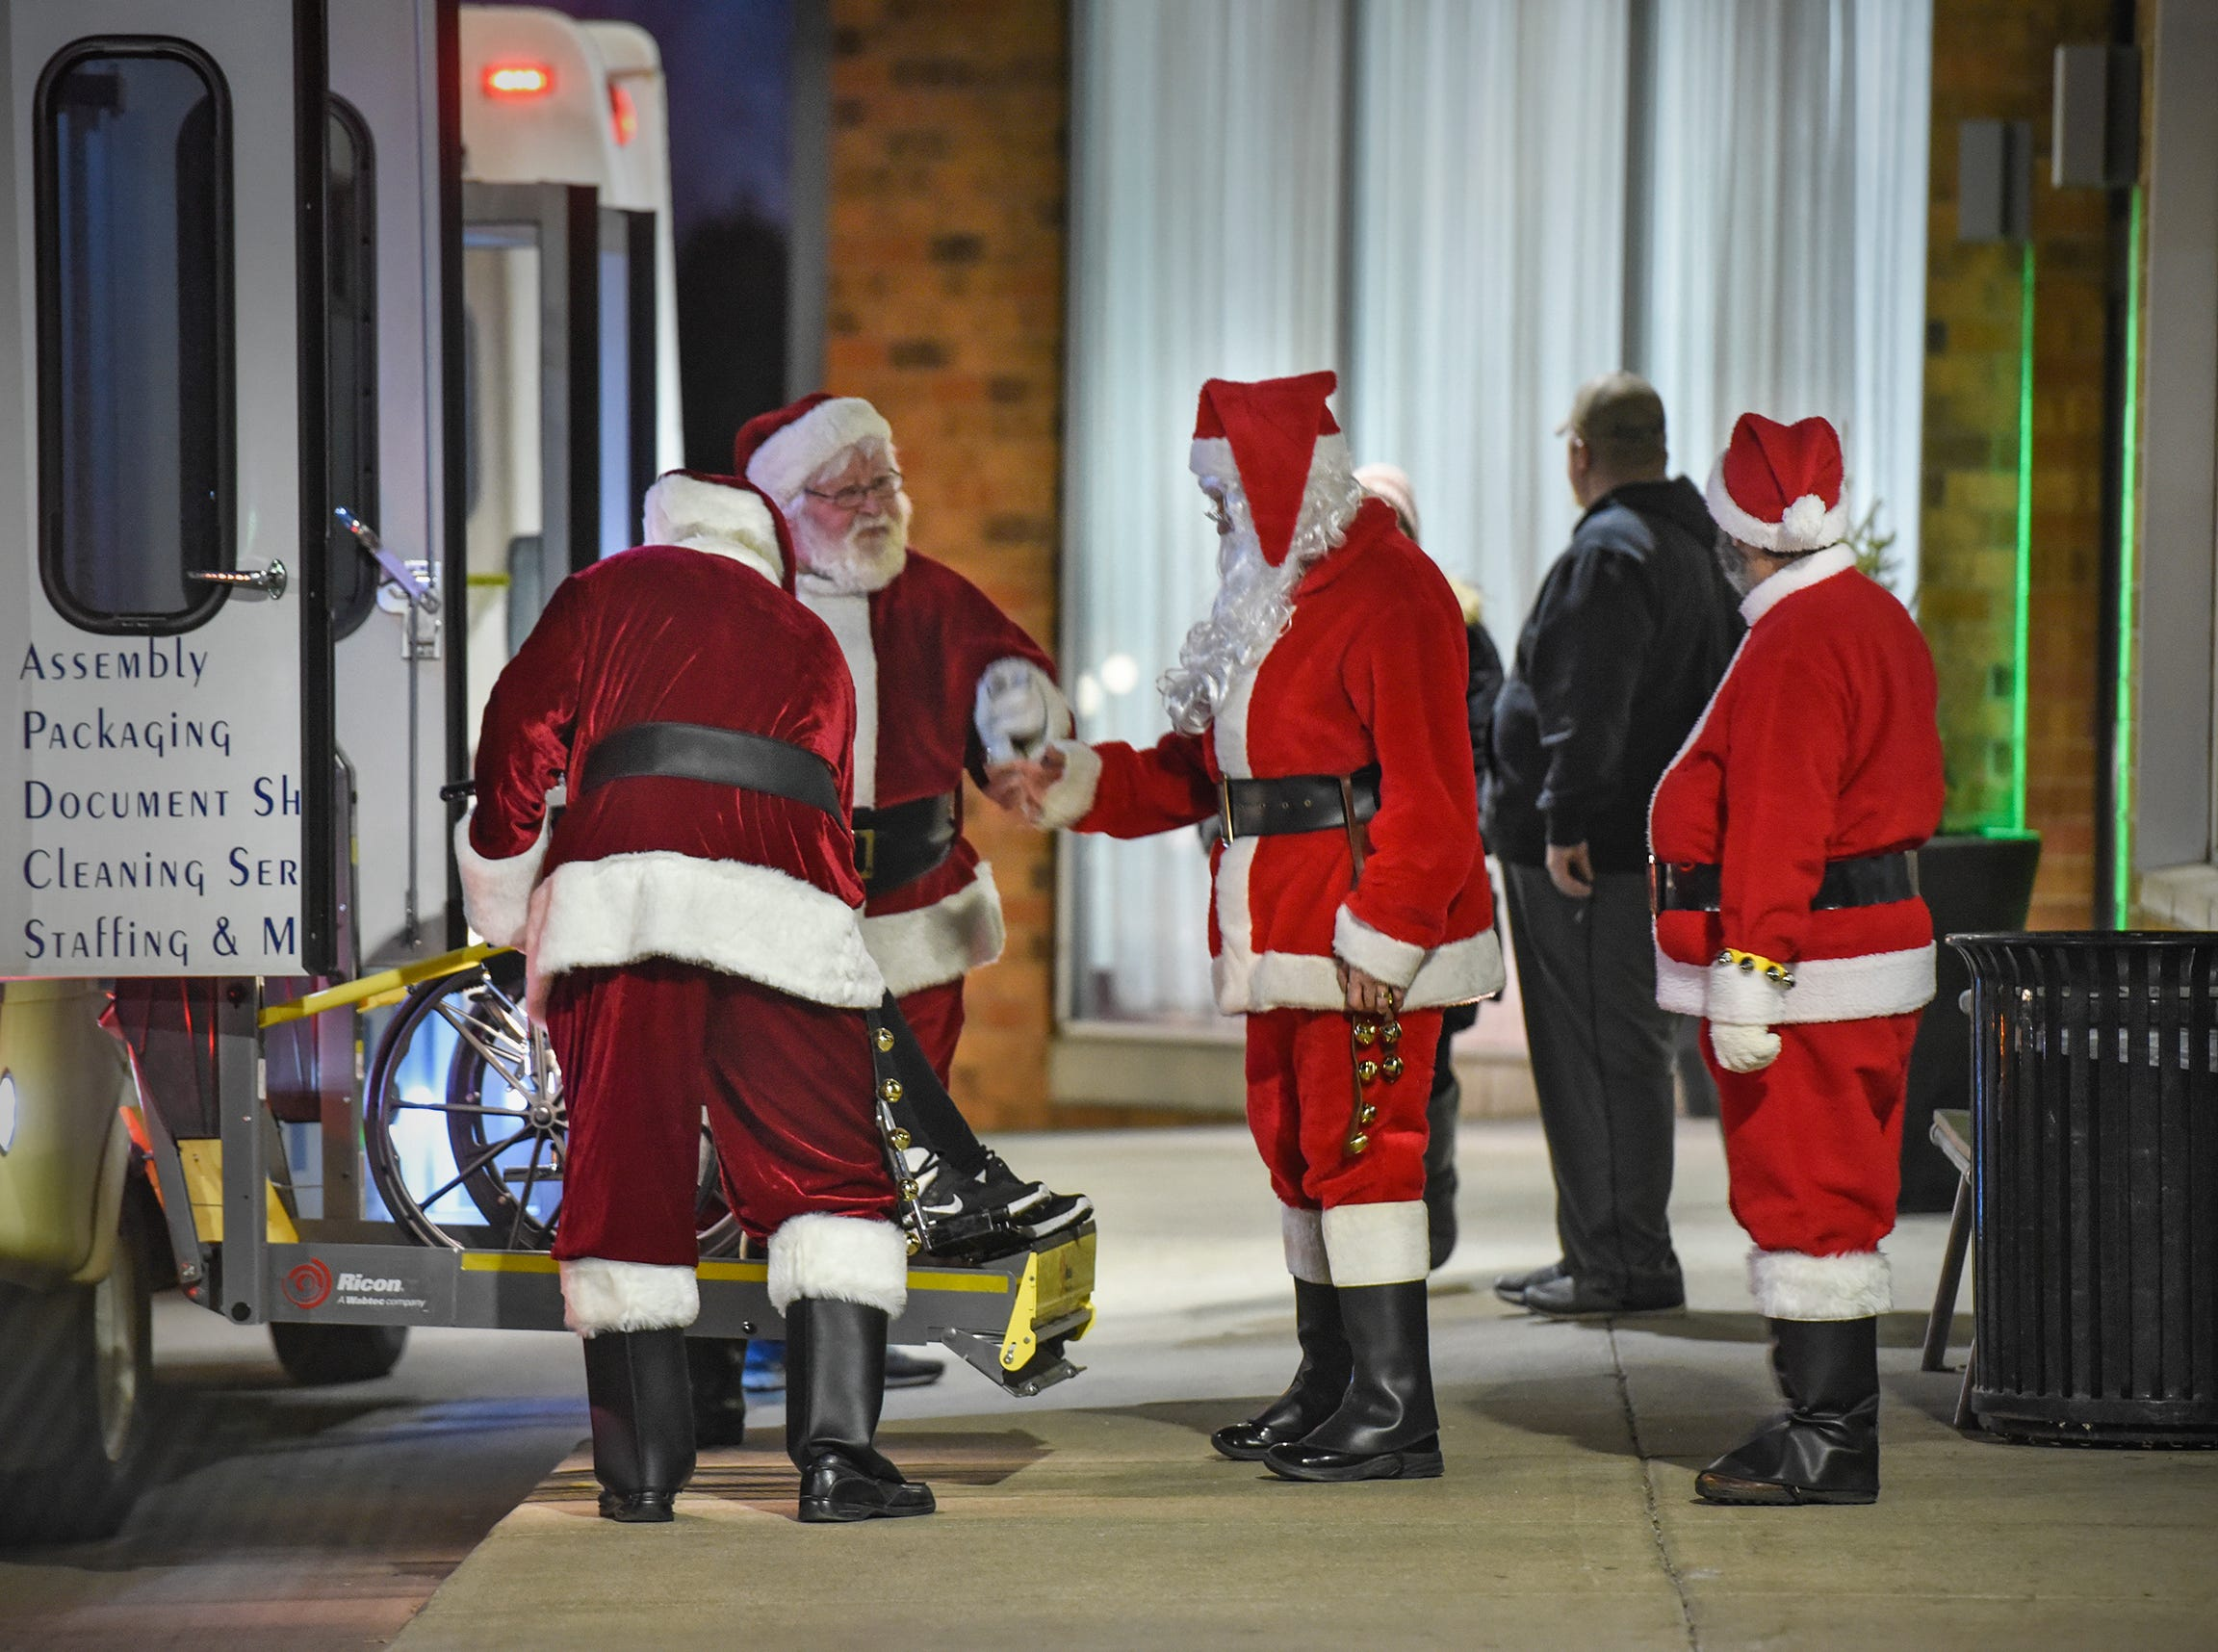 Santas line up to greet people for the Dinner with Santa event Monday, Dec. 17, in St. Cloud.